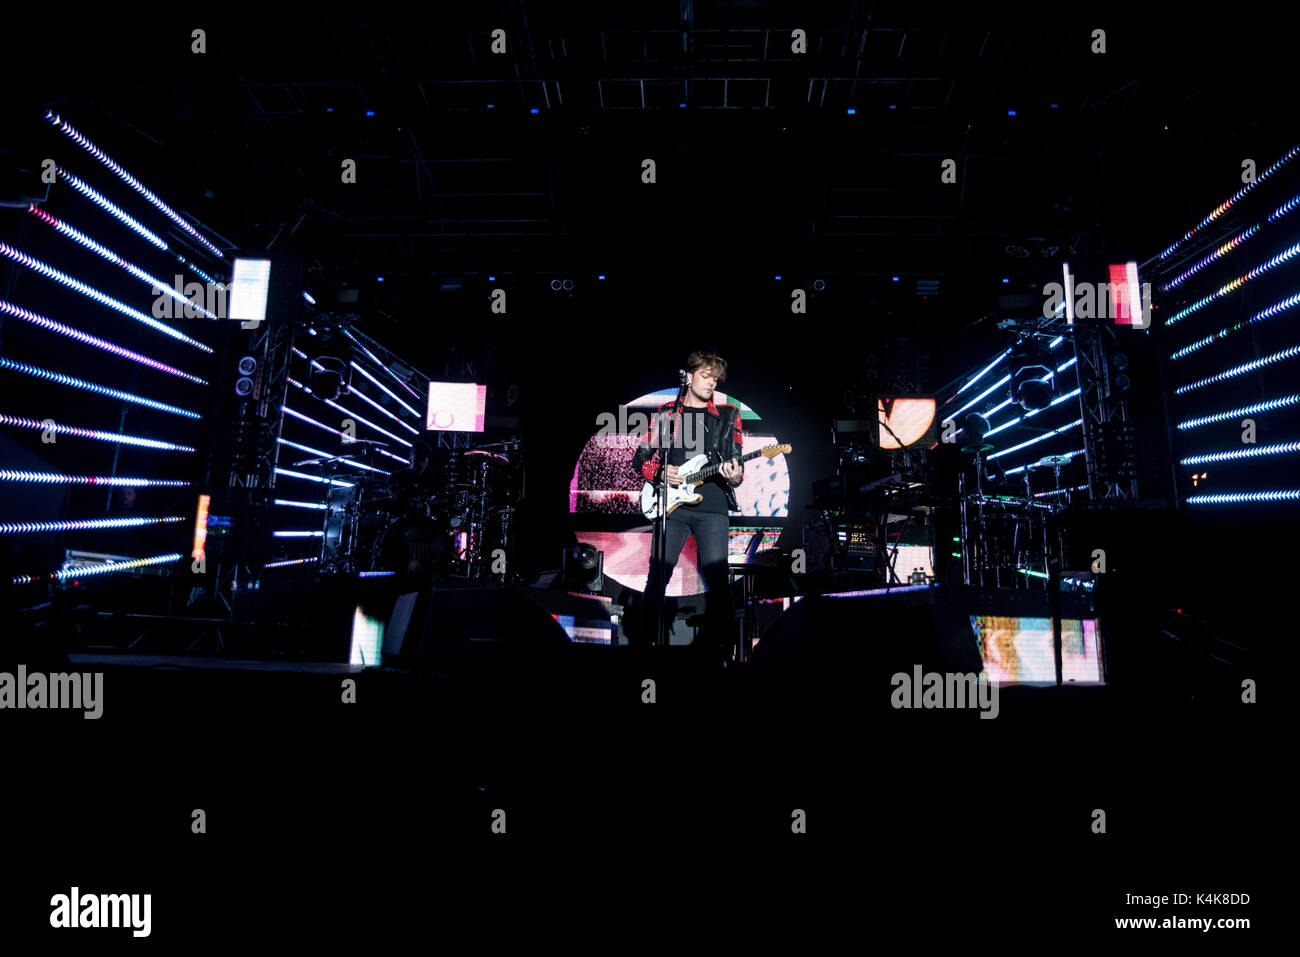 Moncalieri, italy 6th september 2017. The italian band The Kolors performs at 45° nord entertainment center in Moncalieri Credit: Alberto Gandolfo/Alamy Live News - Stock Image